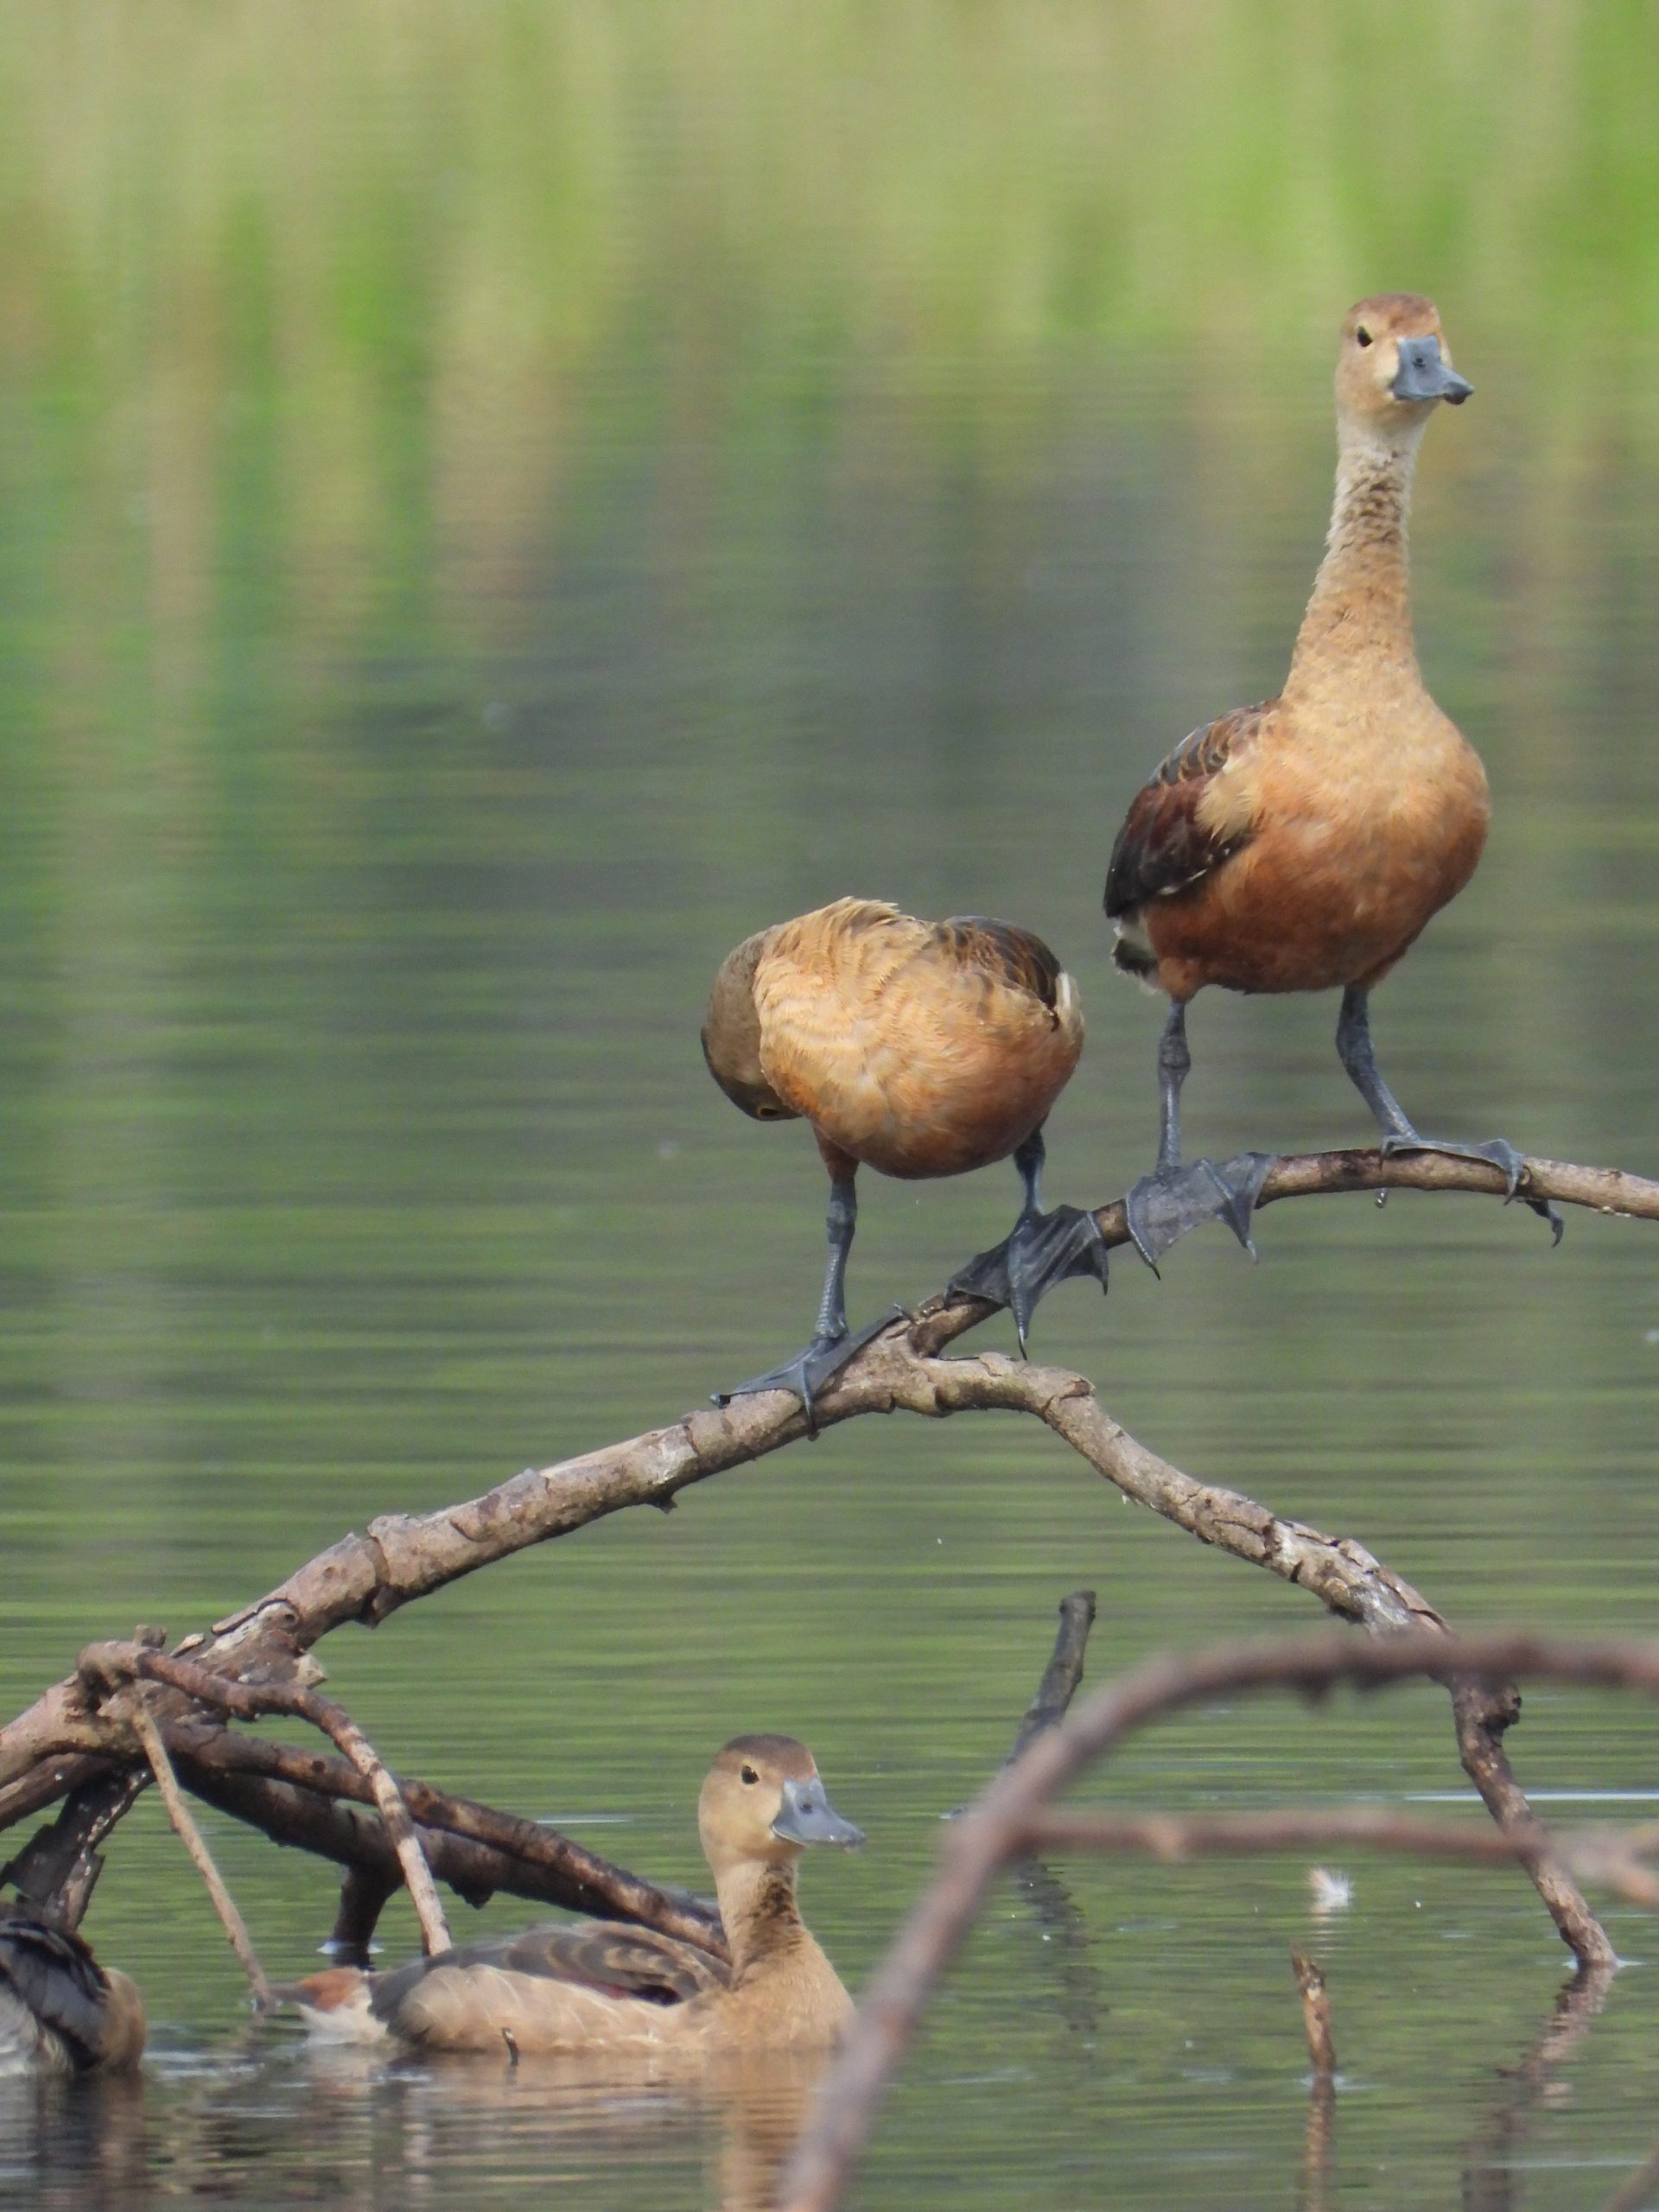 Whistling duck chicks on a broken plant